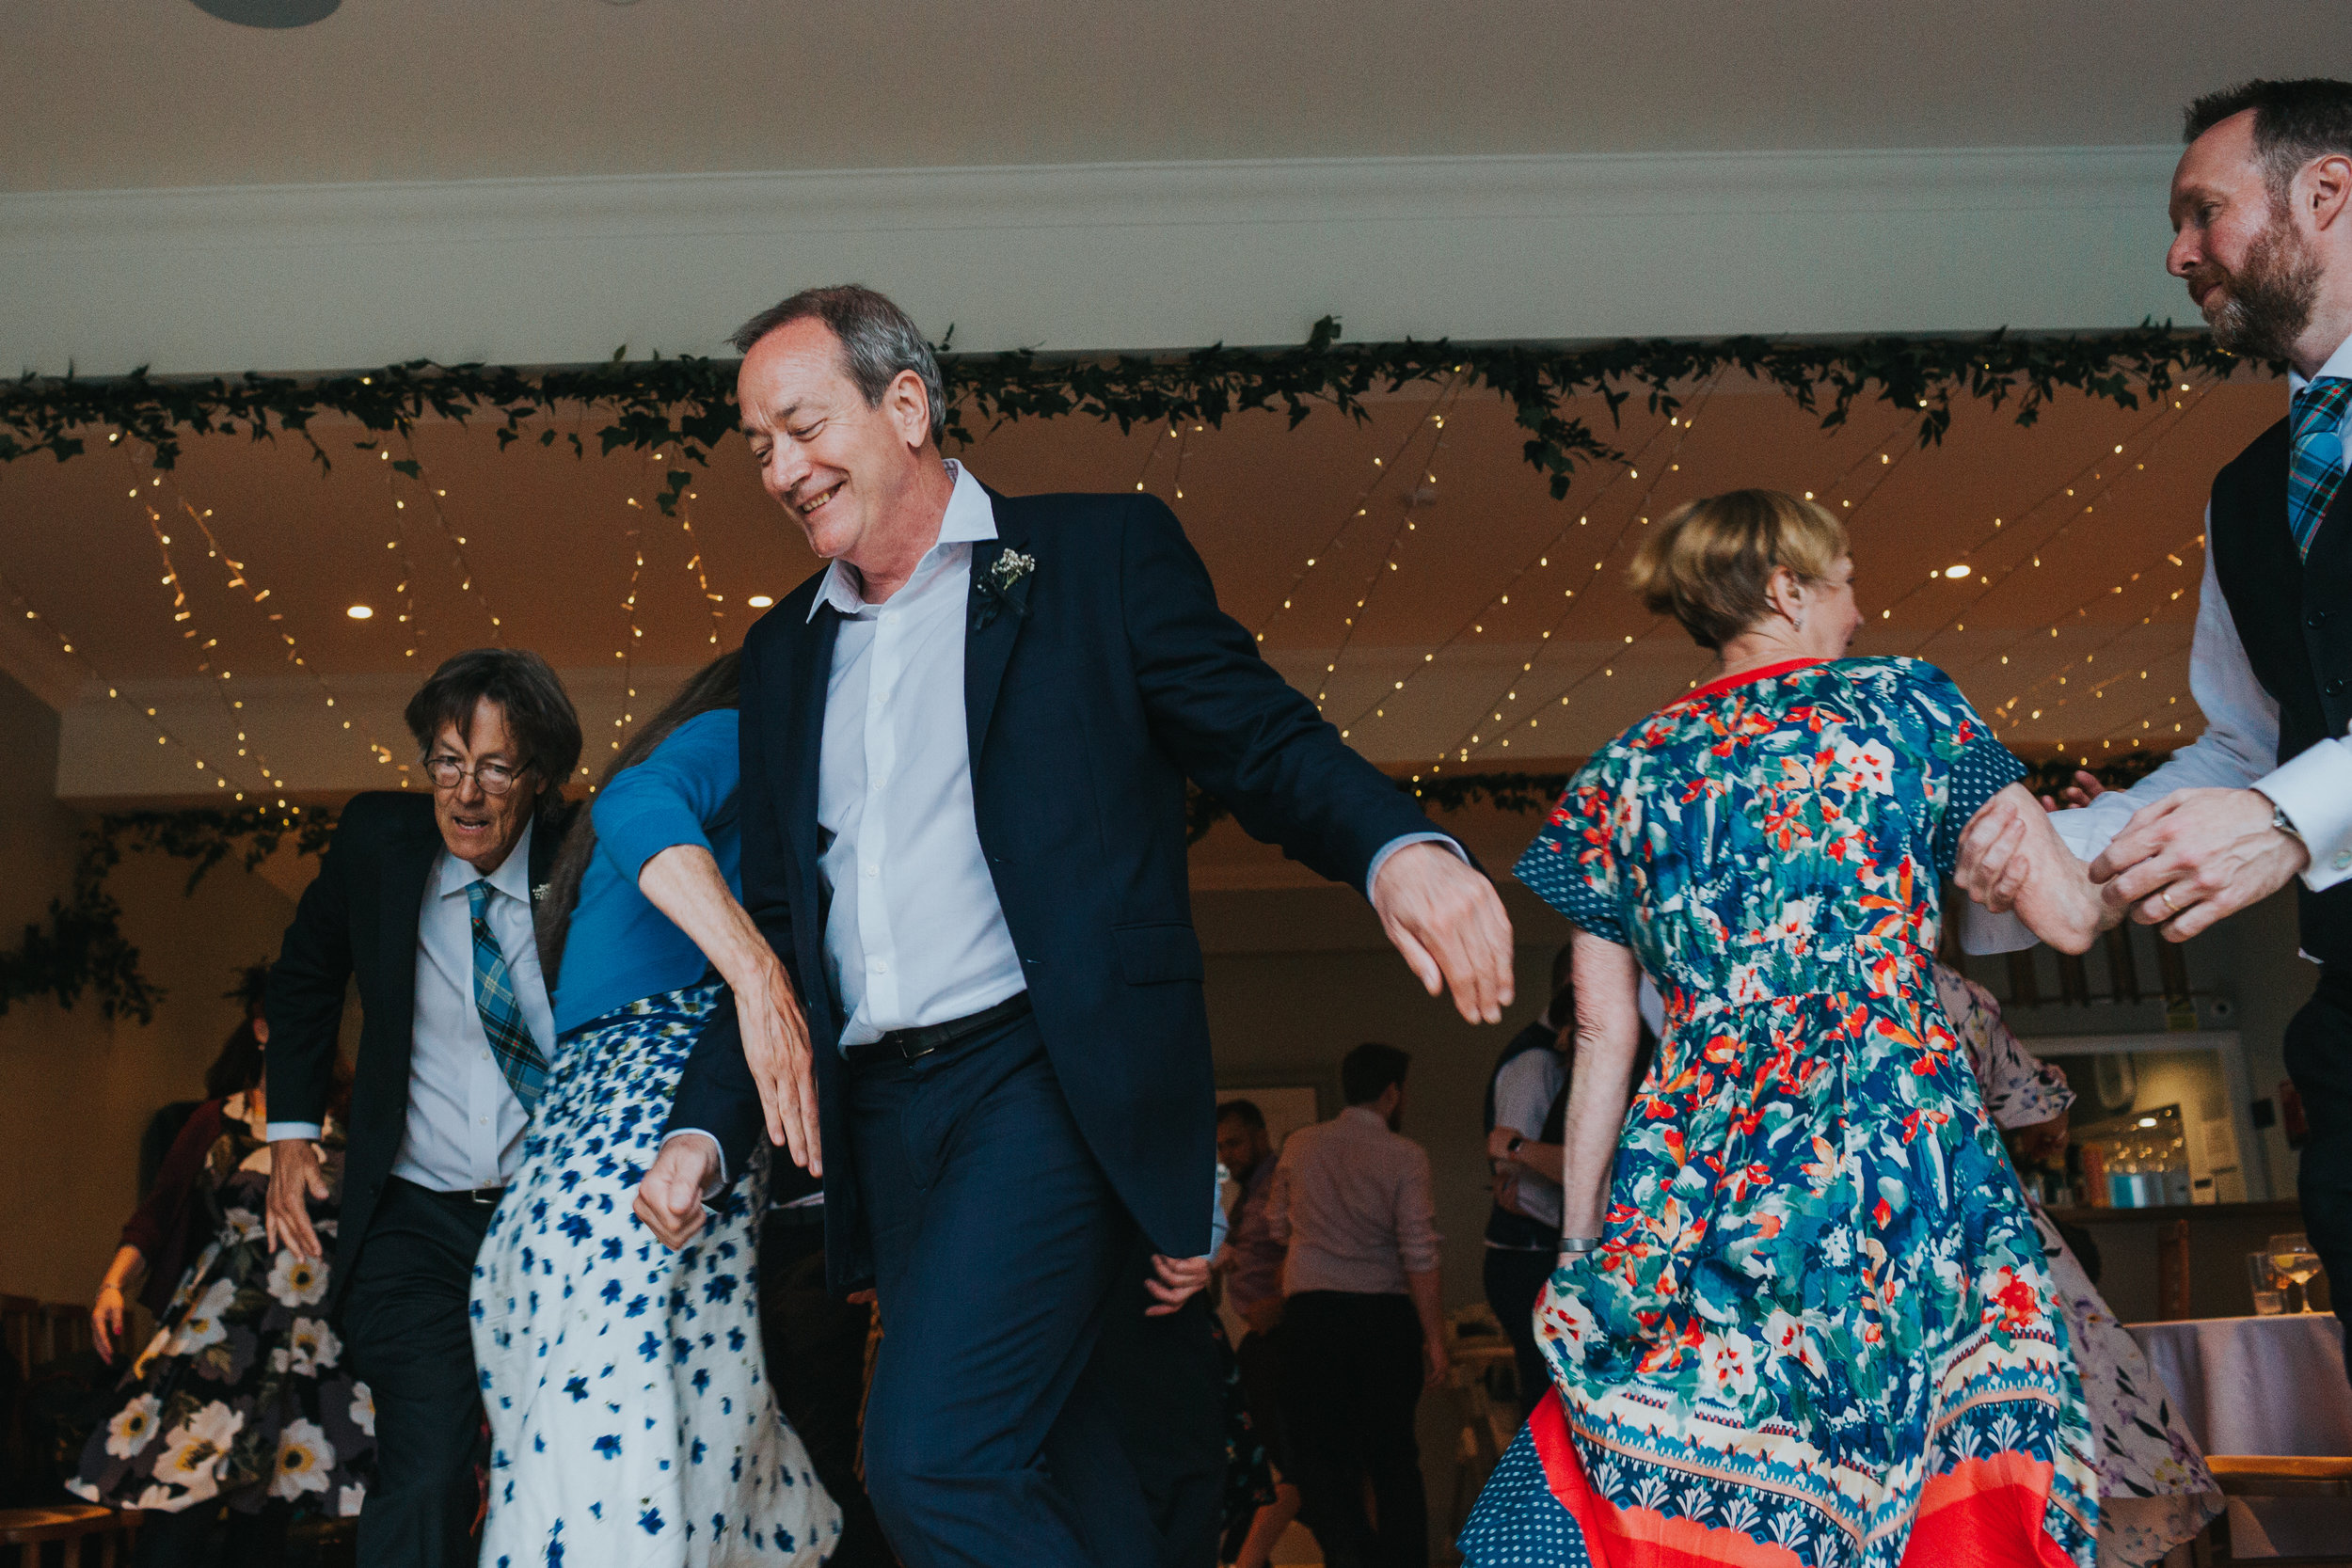 Guests run around the dance floor.